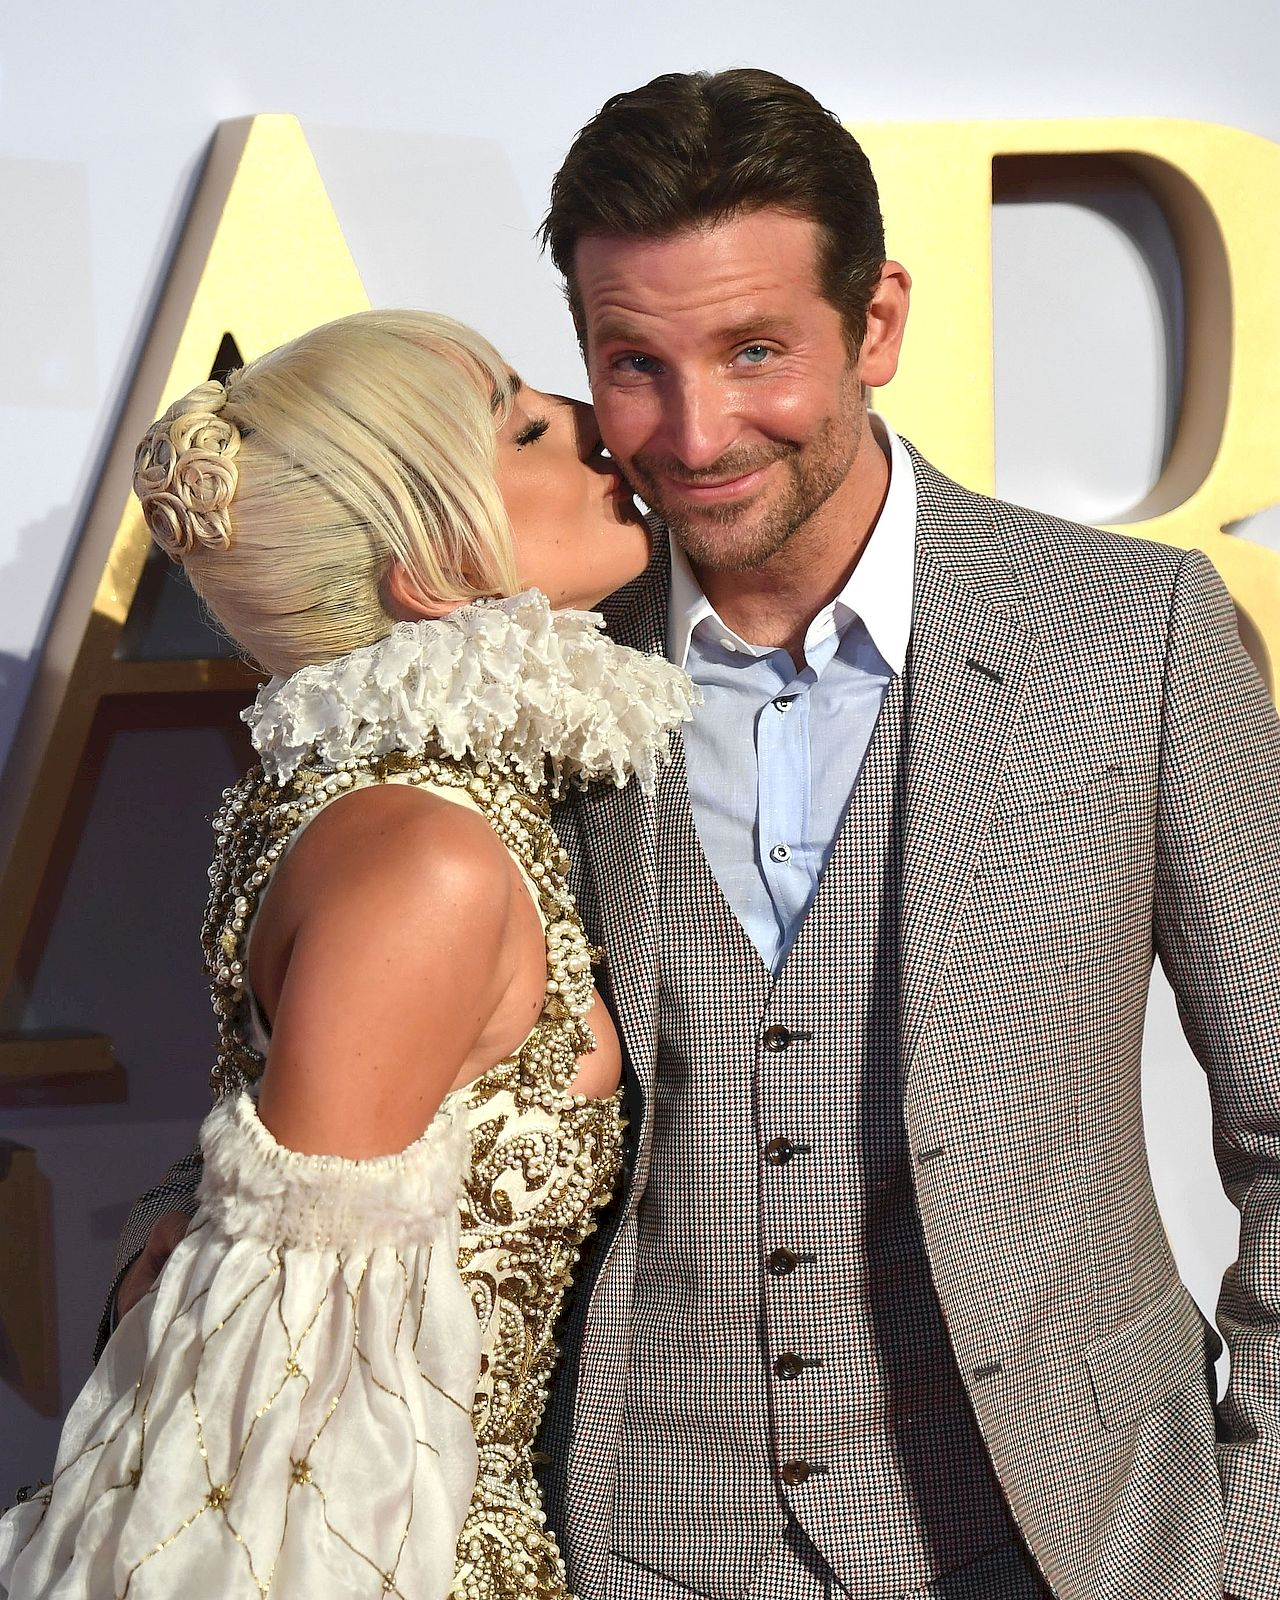 A Star is Born - UK premiere held at the Vue Cinema, Leicester Square. / TIMMSY / BACKGRID , kod: Lady Gaga - Bradley Cooper